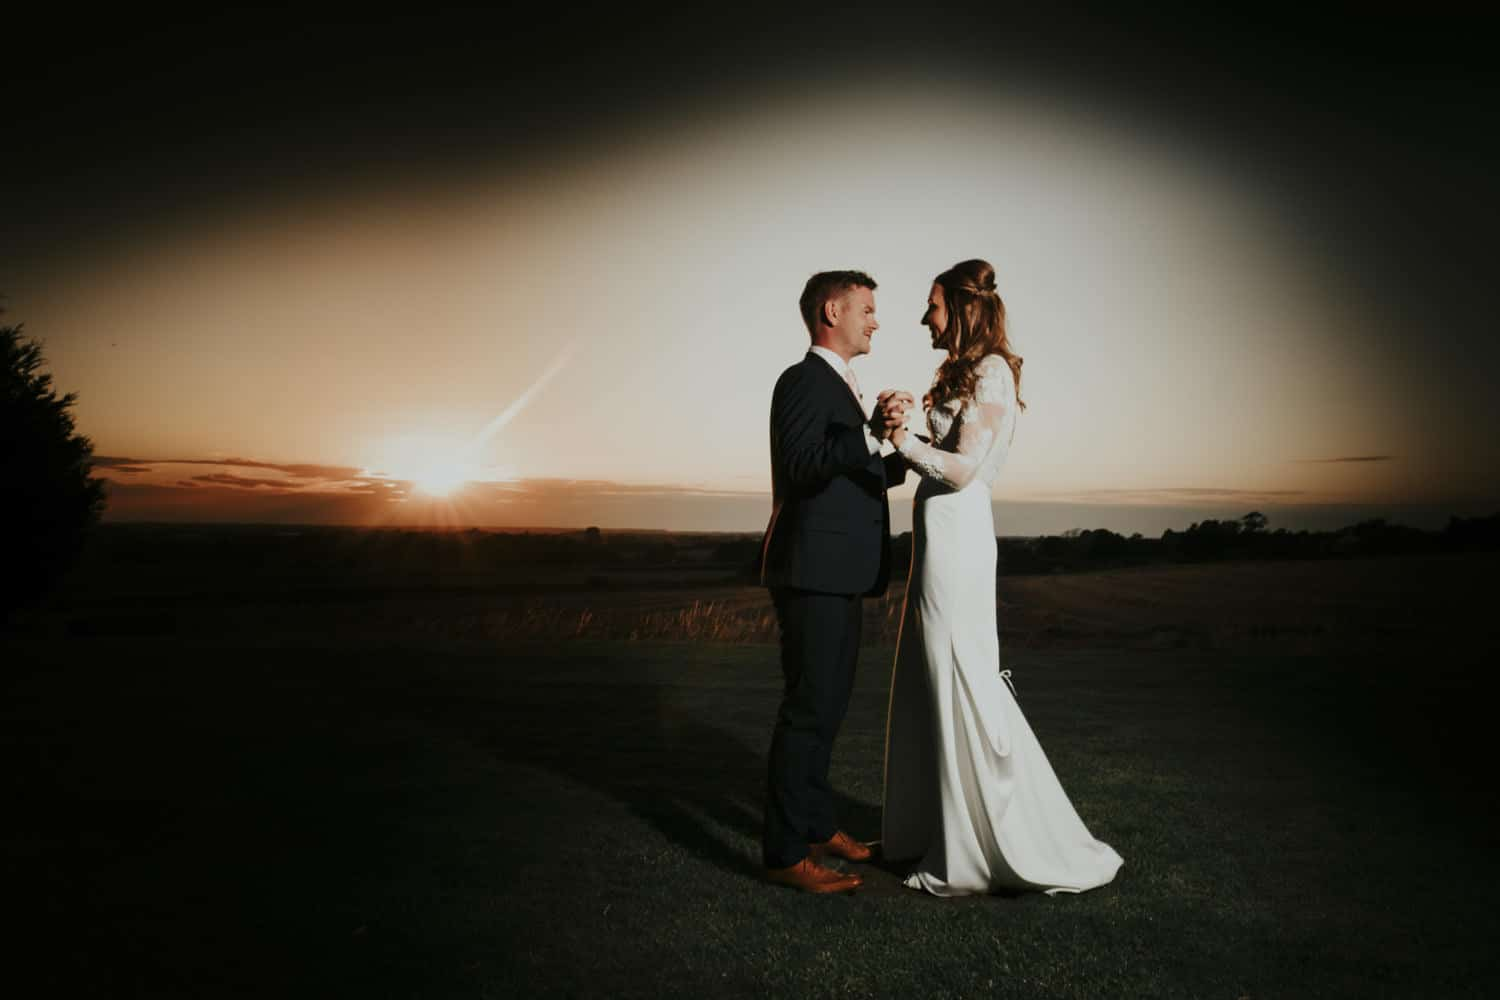 Beautiful sunset portrait of bride and groom